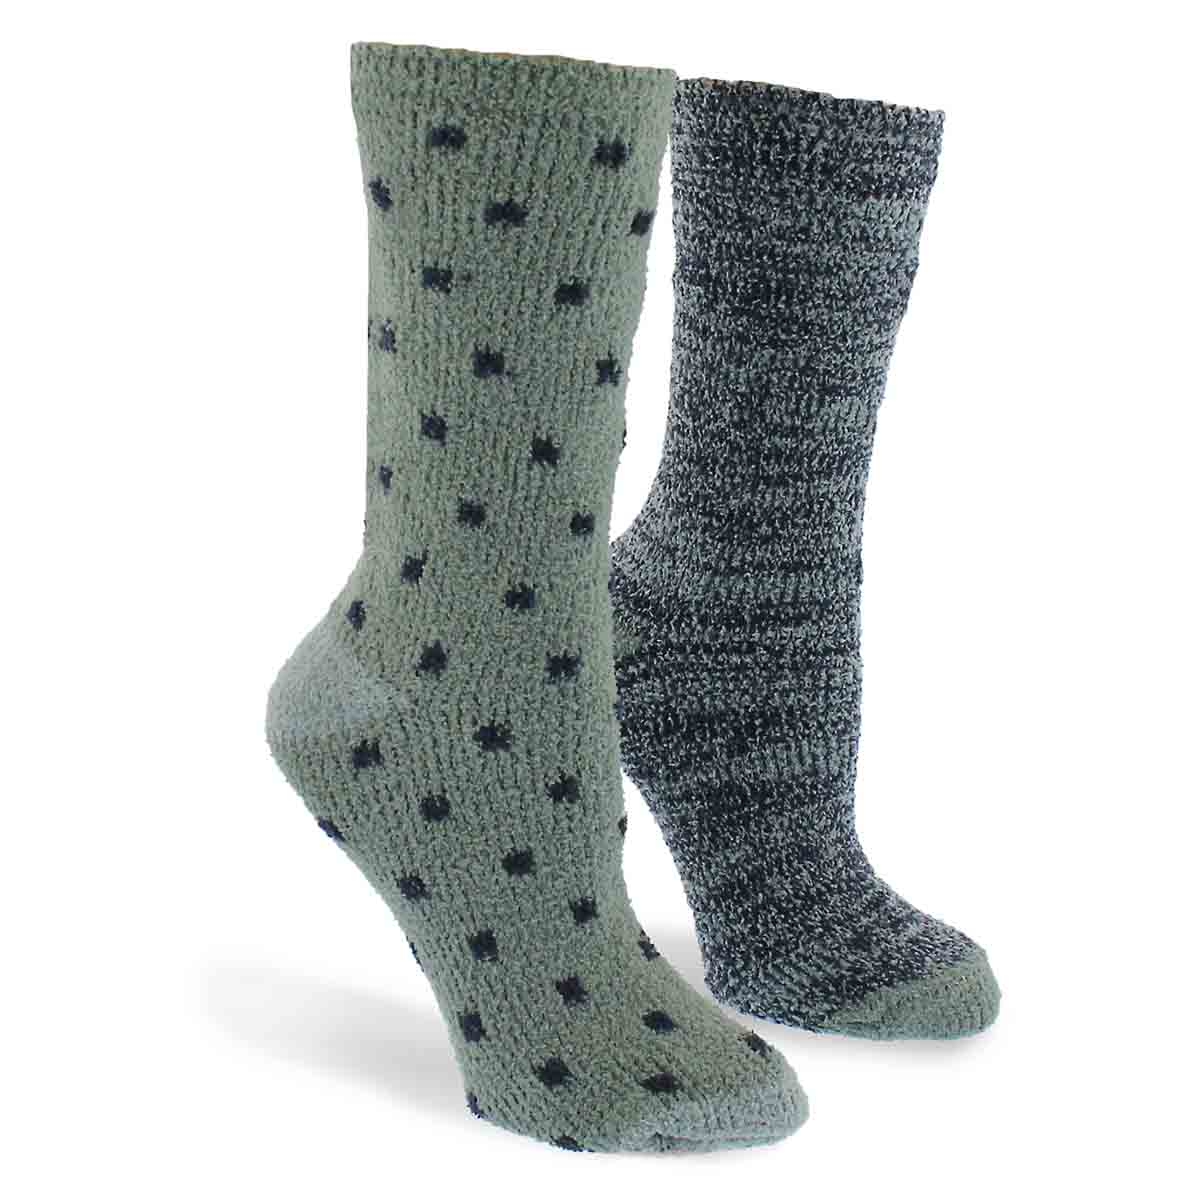 Lds Small Square grn mlti sock - 2 pk